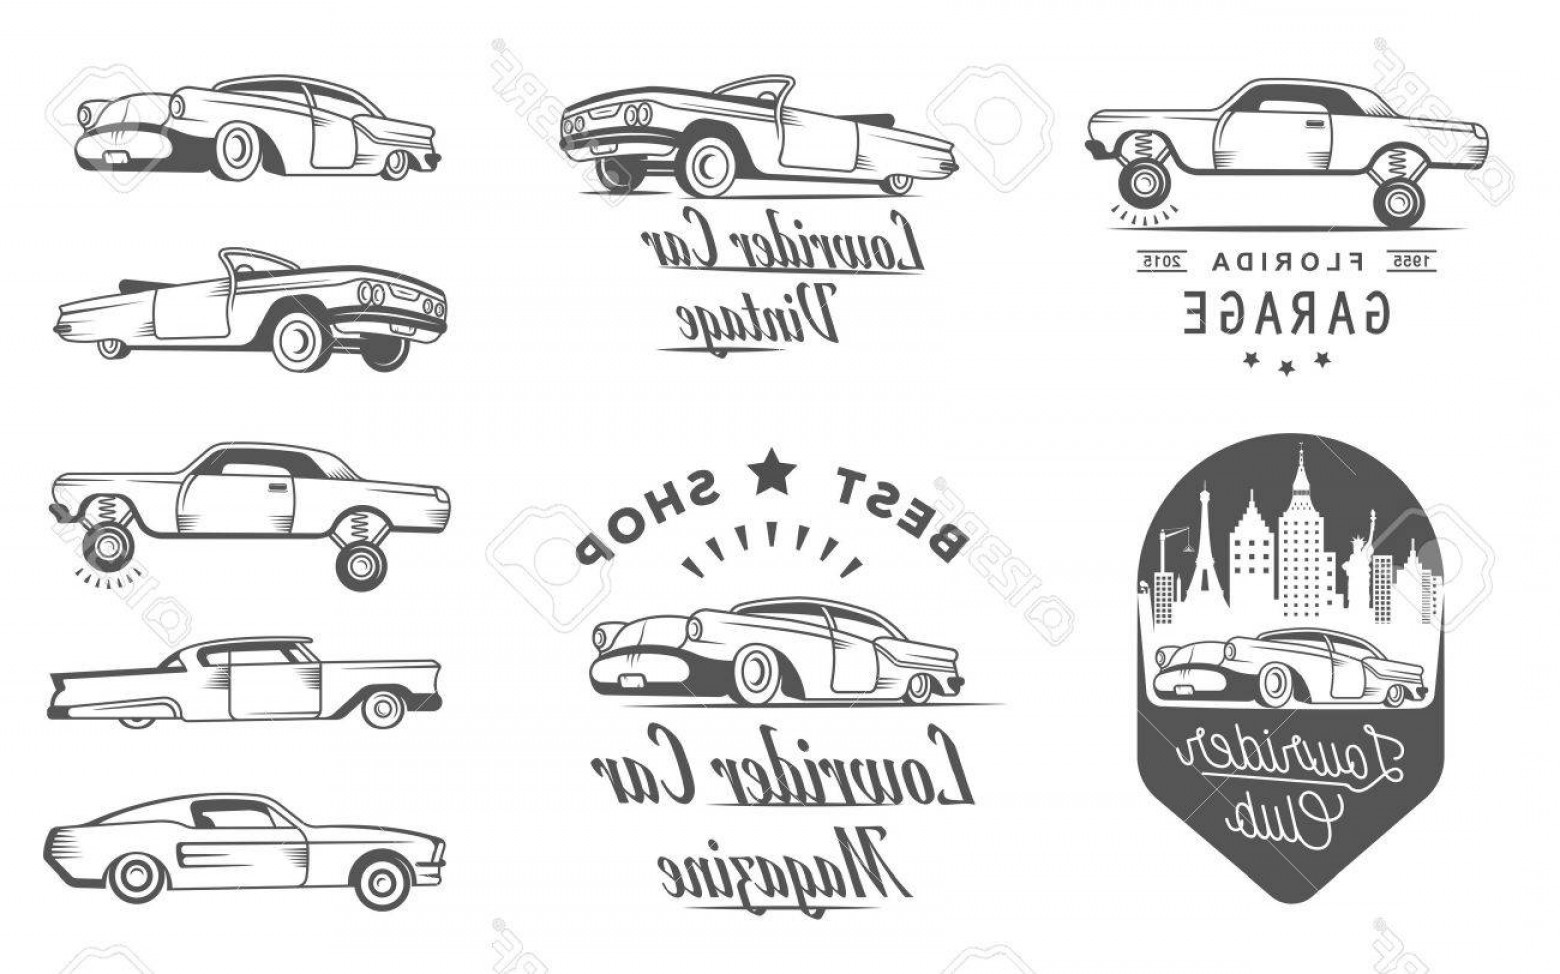 Lowrider Vector: Photostock Vector Set Vintage Lowrider Logo Badge Sign Emblems Sticers And Elements Design Collection Black And White